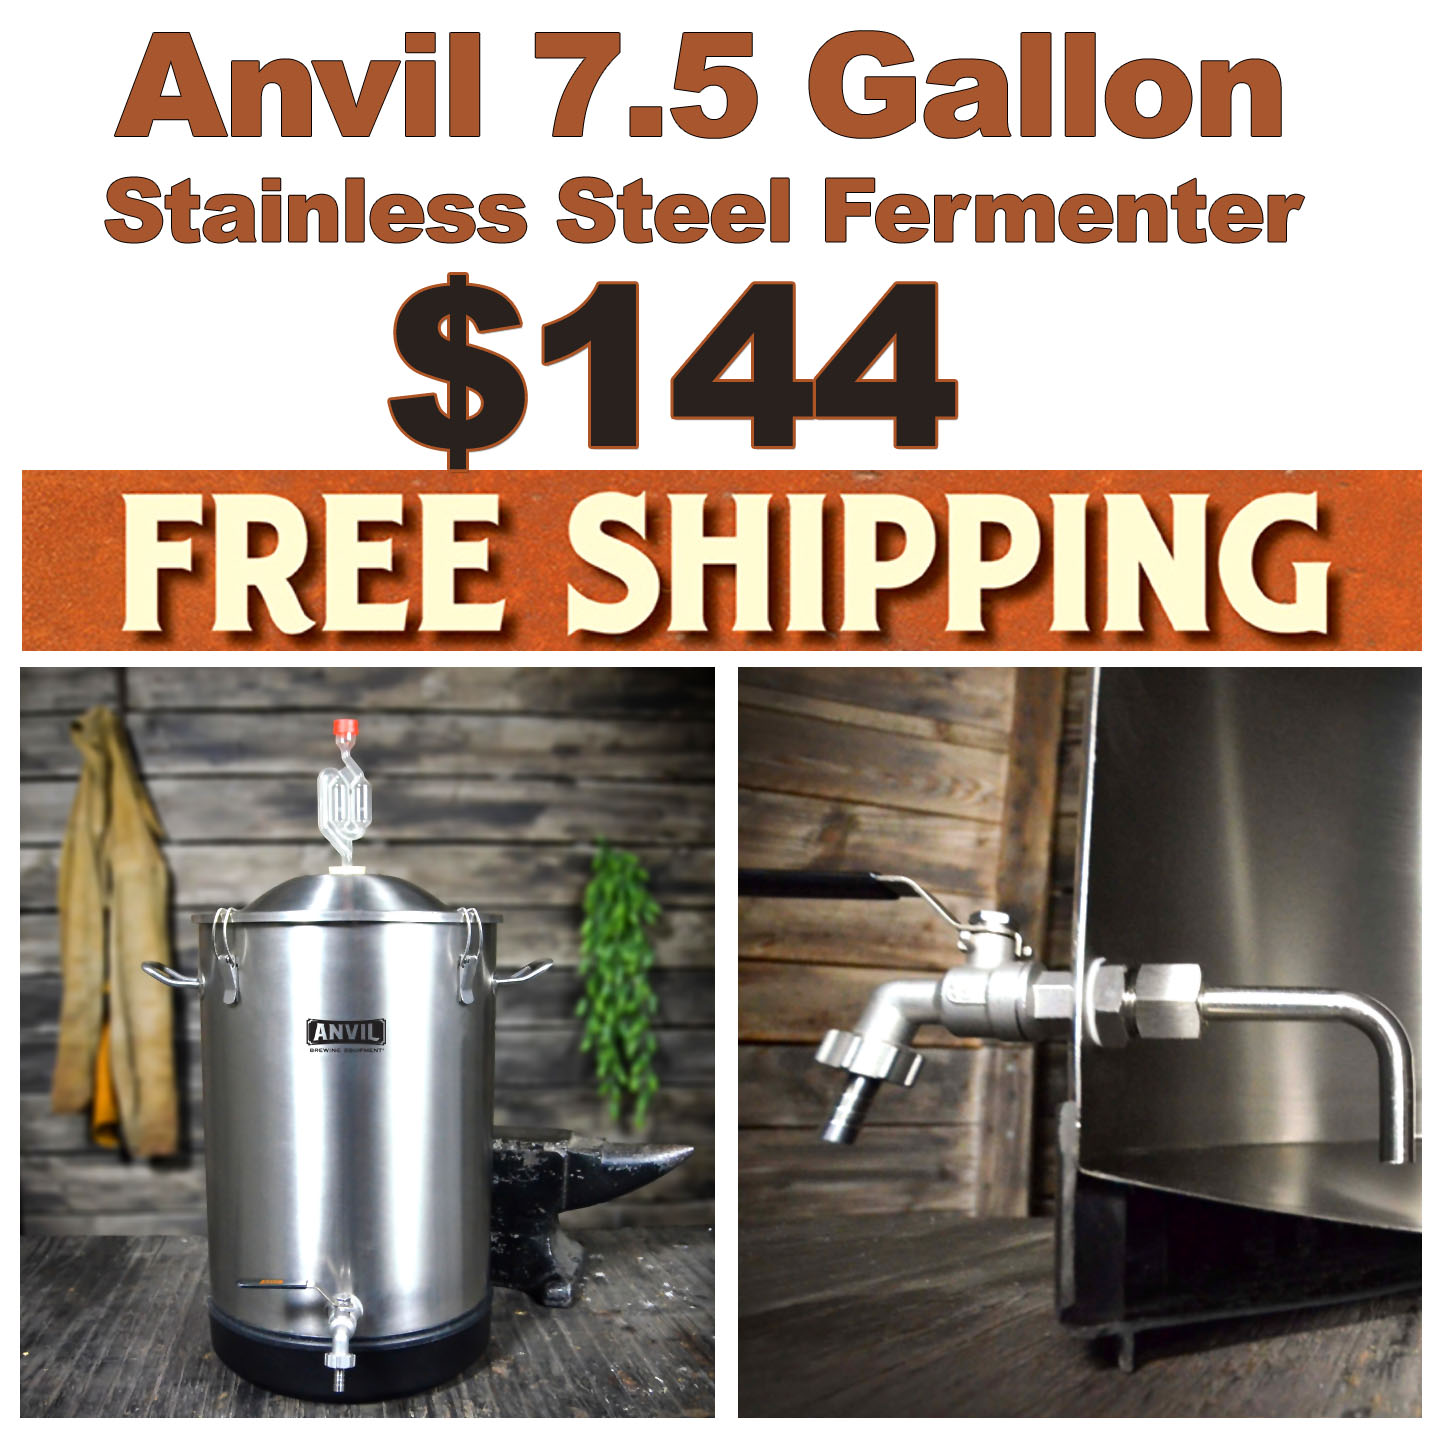 Home Wine Making Coupon Codes for Get an Anvil 7.5 Gallon Stainless Steel Fermenter for Just $144 Plus Free Shipping with this Anvil Promo Code Coupon Code